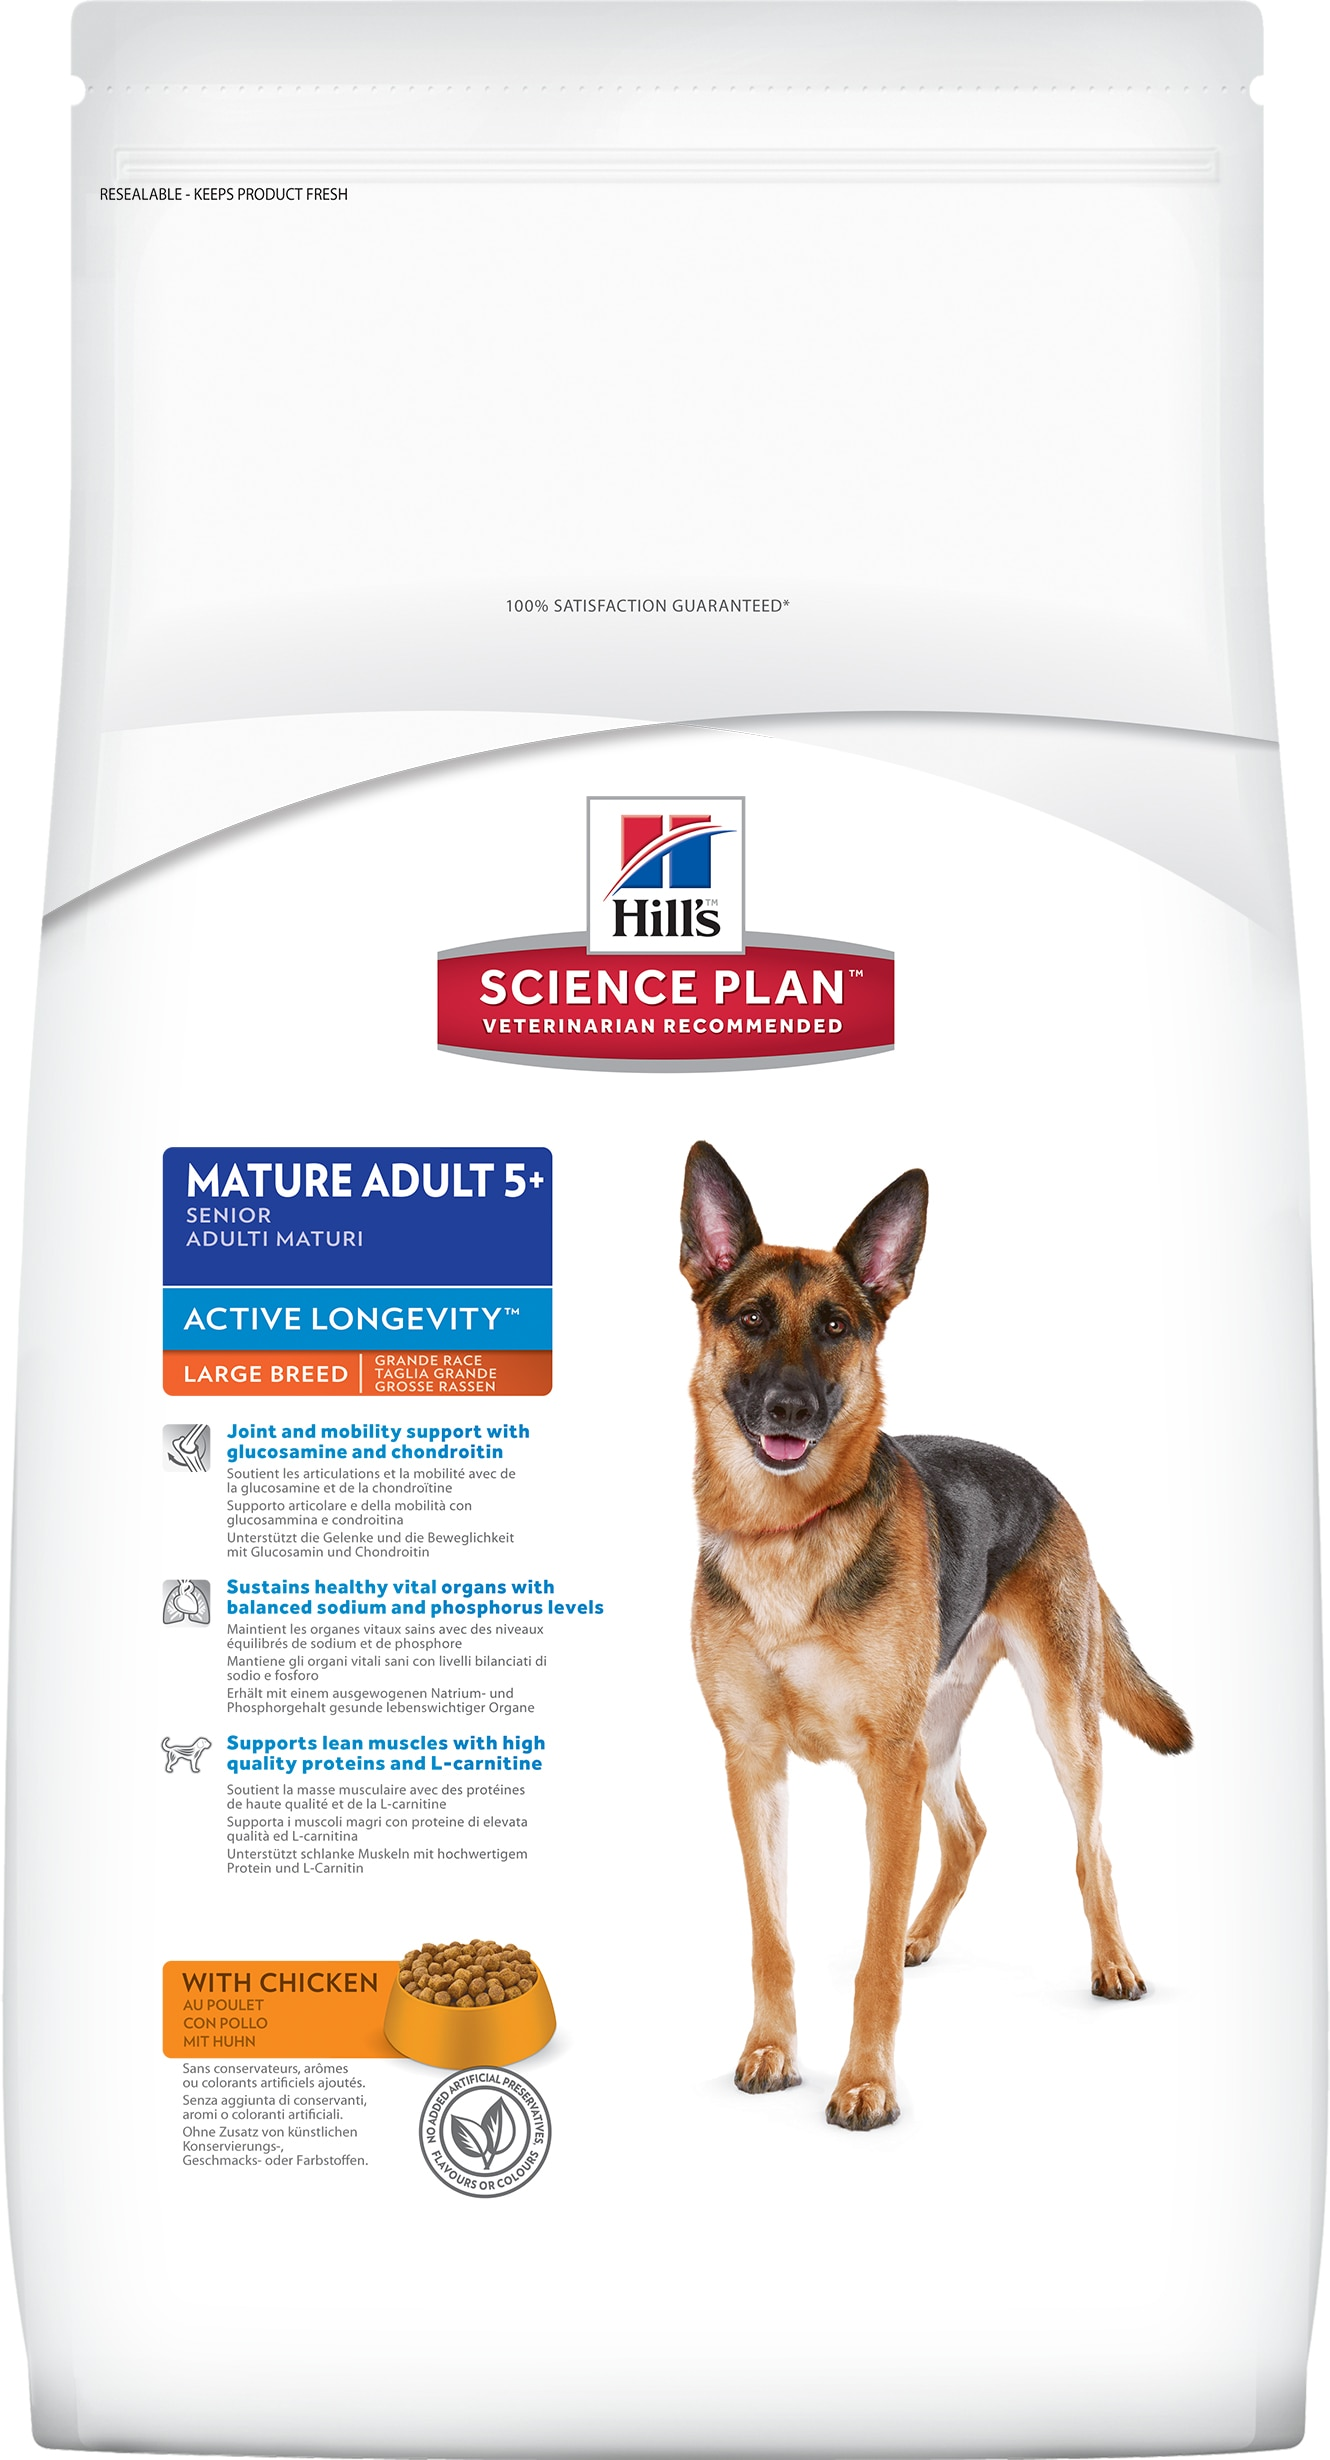 sp-canine-science-plan-mature-adult-5-plus-active-longevity-large-breed-with-chicken-dry